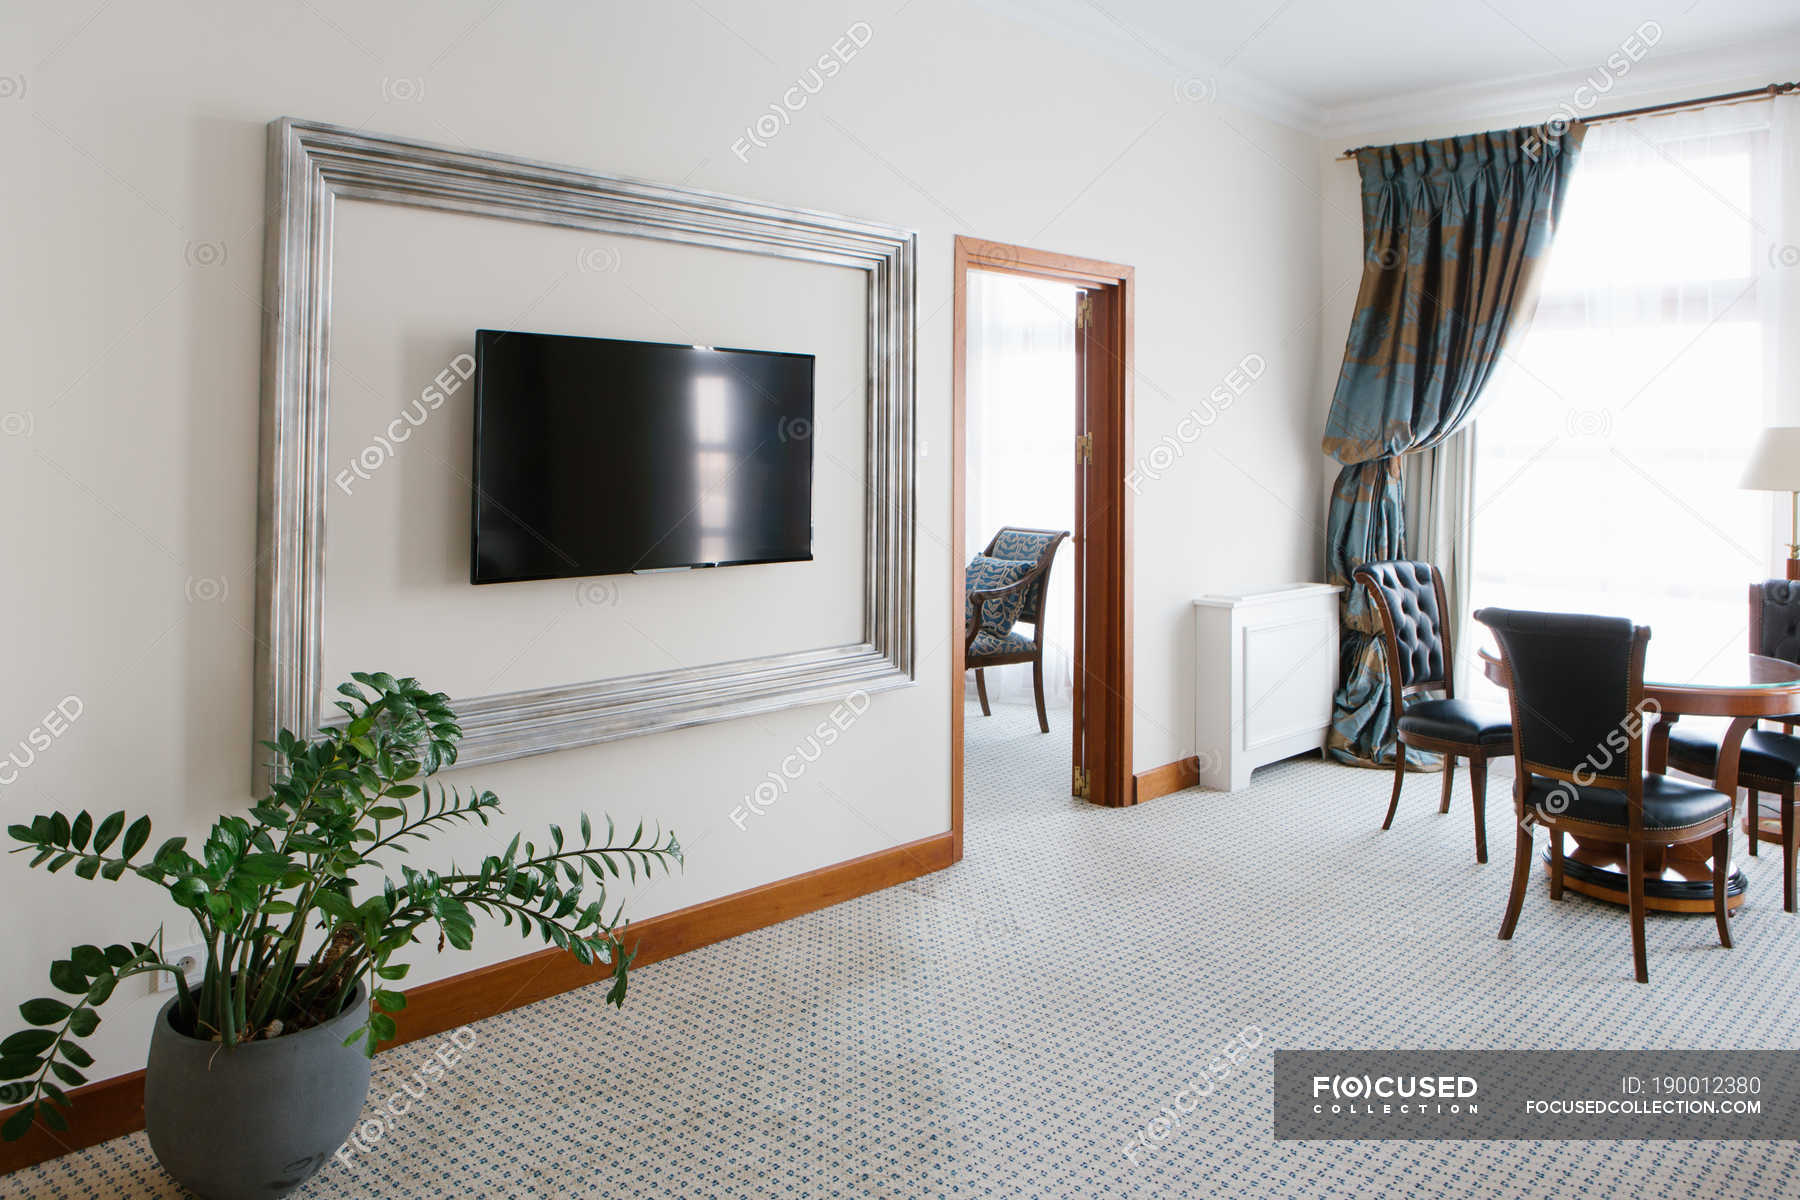 Interior Of Luxury Hotel Room With Chairs And Tv Set Hanging On Wall Stock Photos